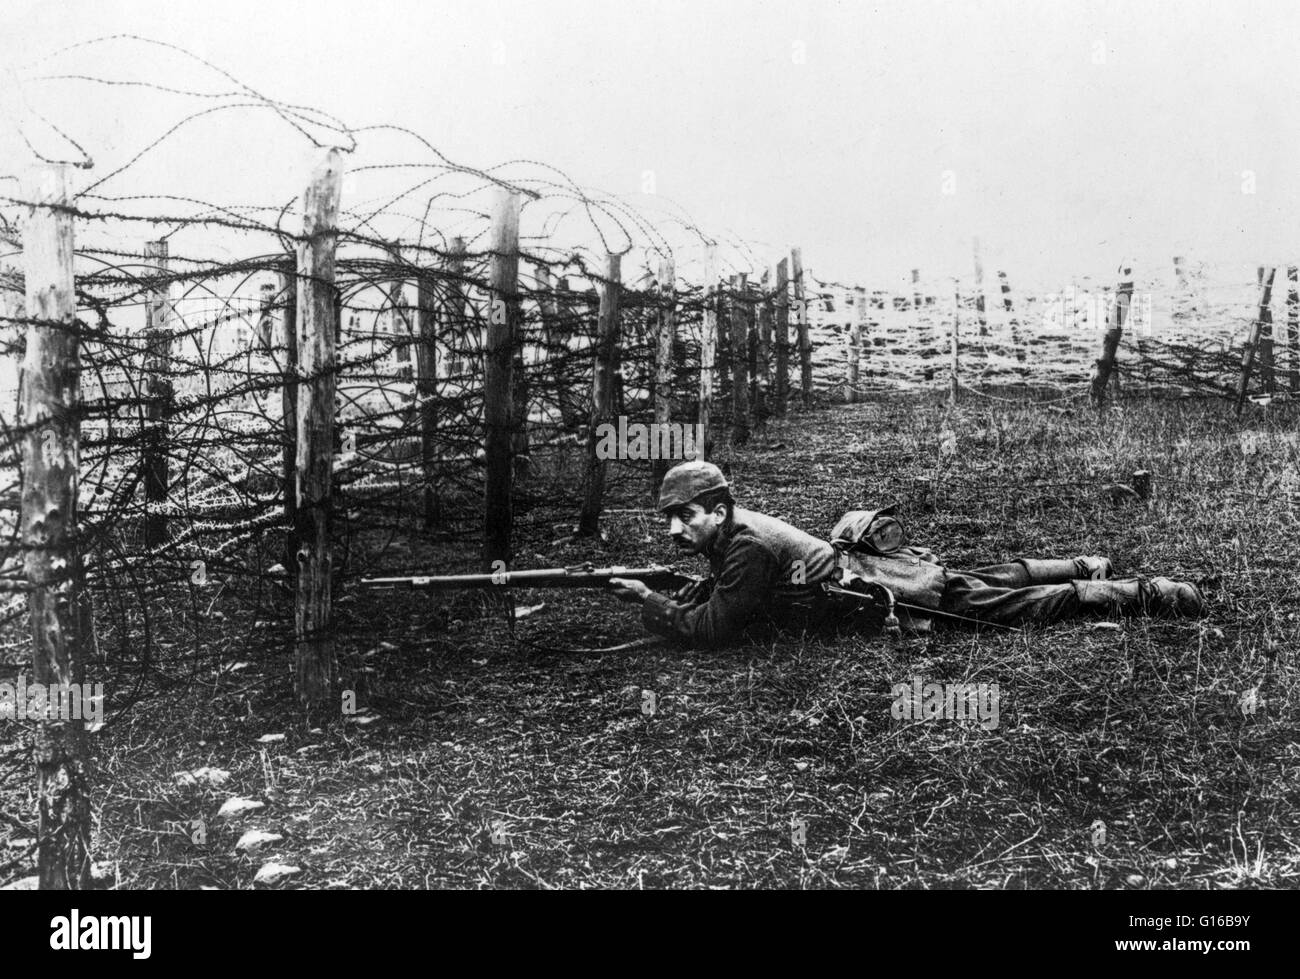 German sniper laying on ground near barbed wire defenses. Throughout World War I, snipers were often used in the - Stock Image